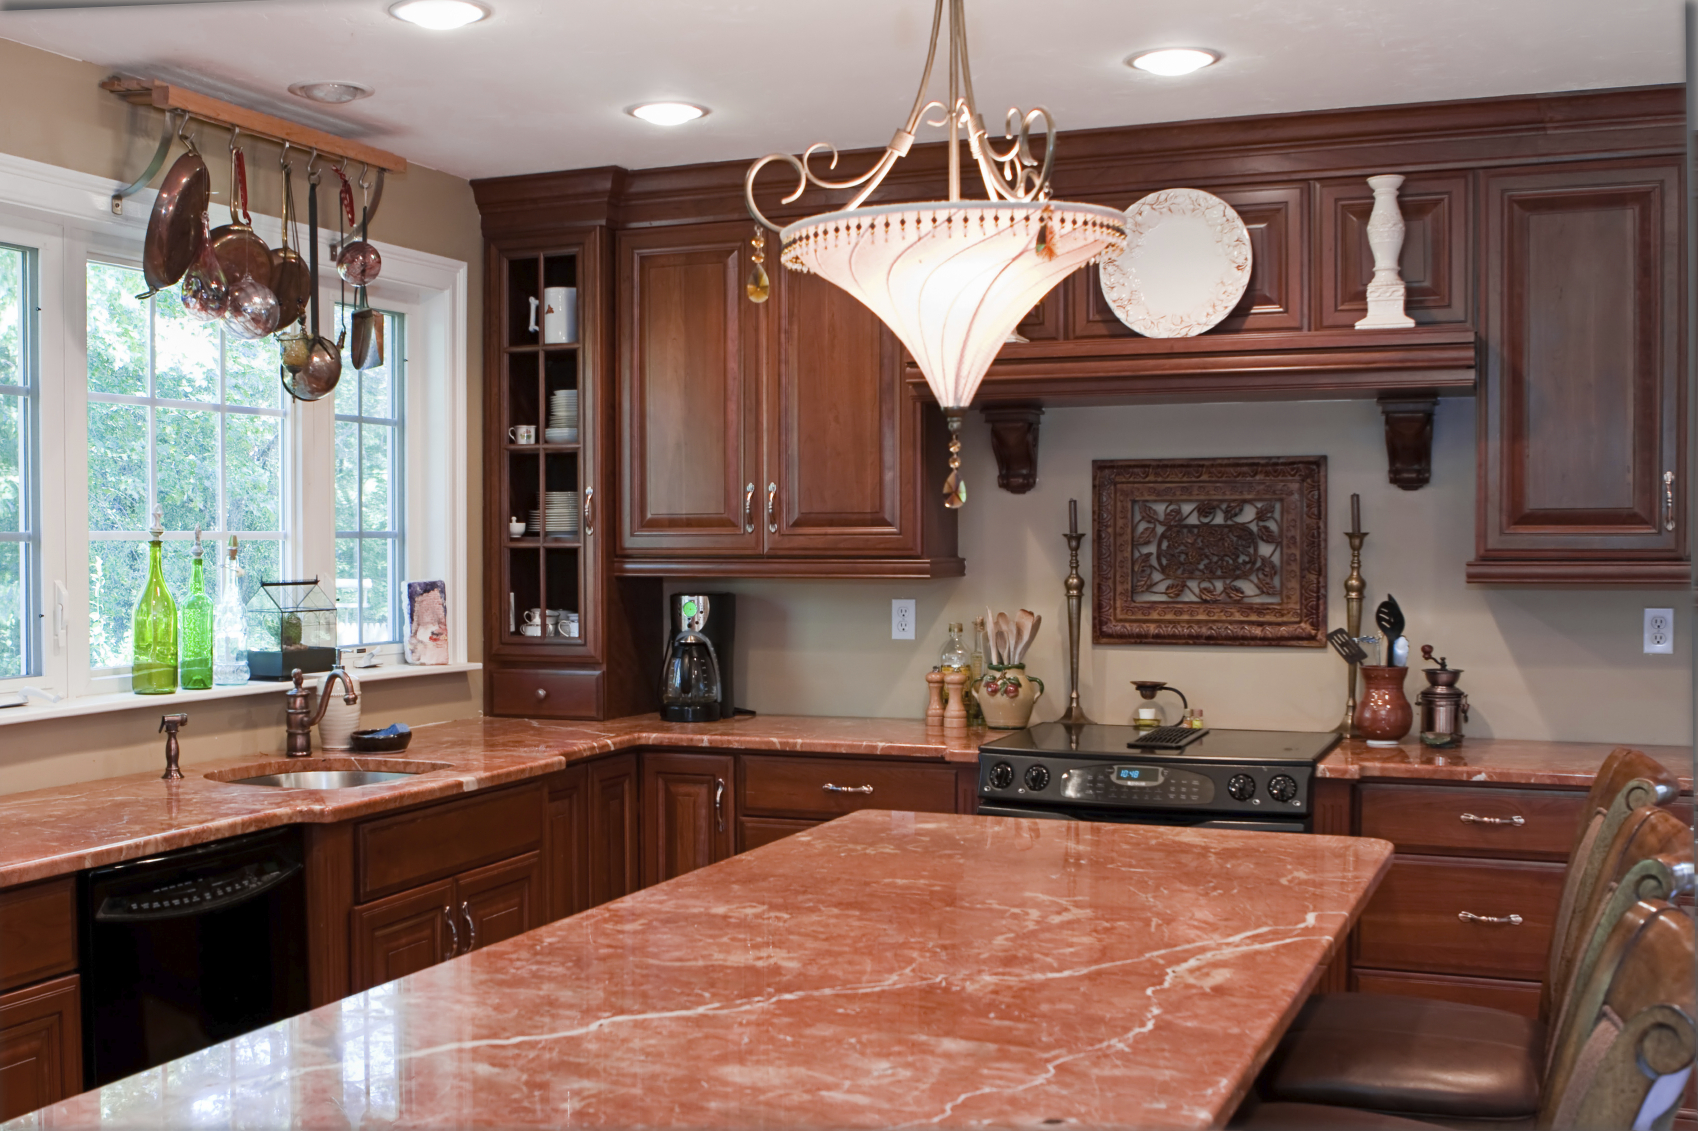 kitchen cabinet patterns window curtain ideas the pros & cons of tile countertops